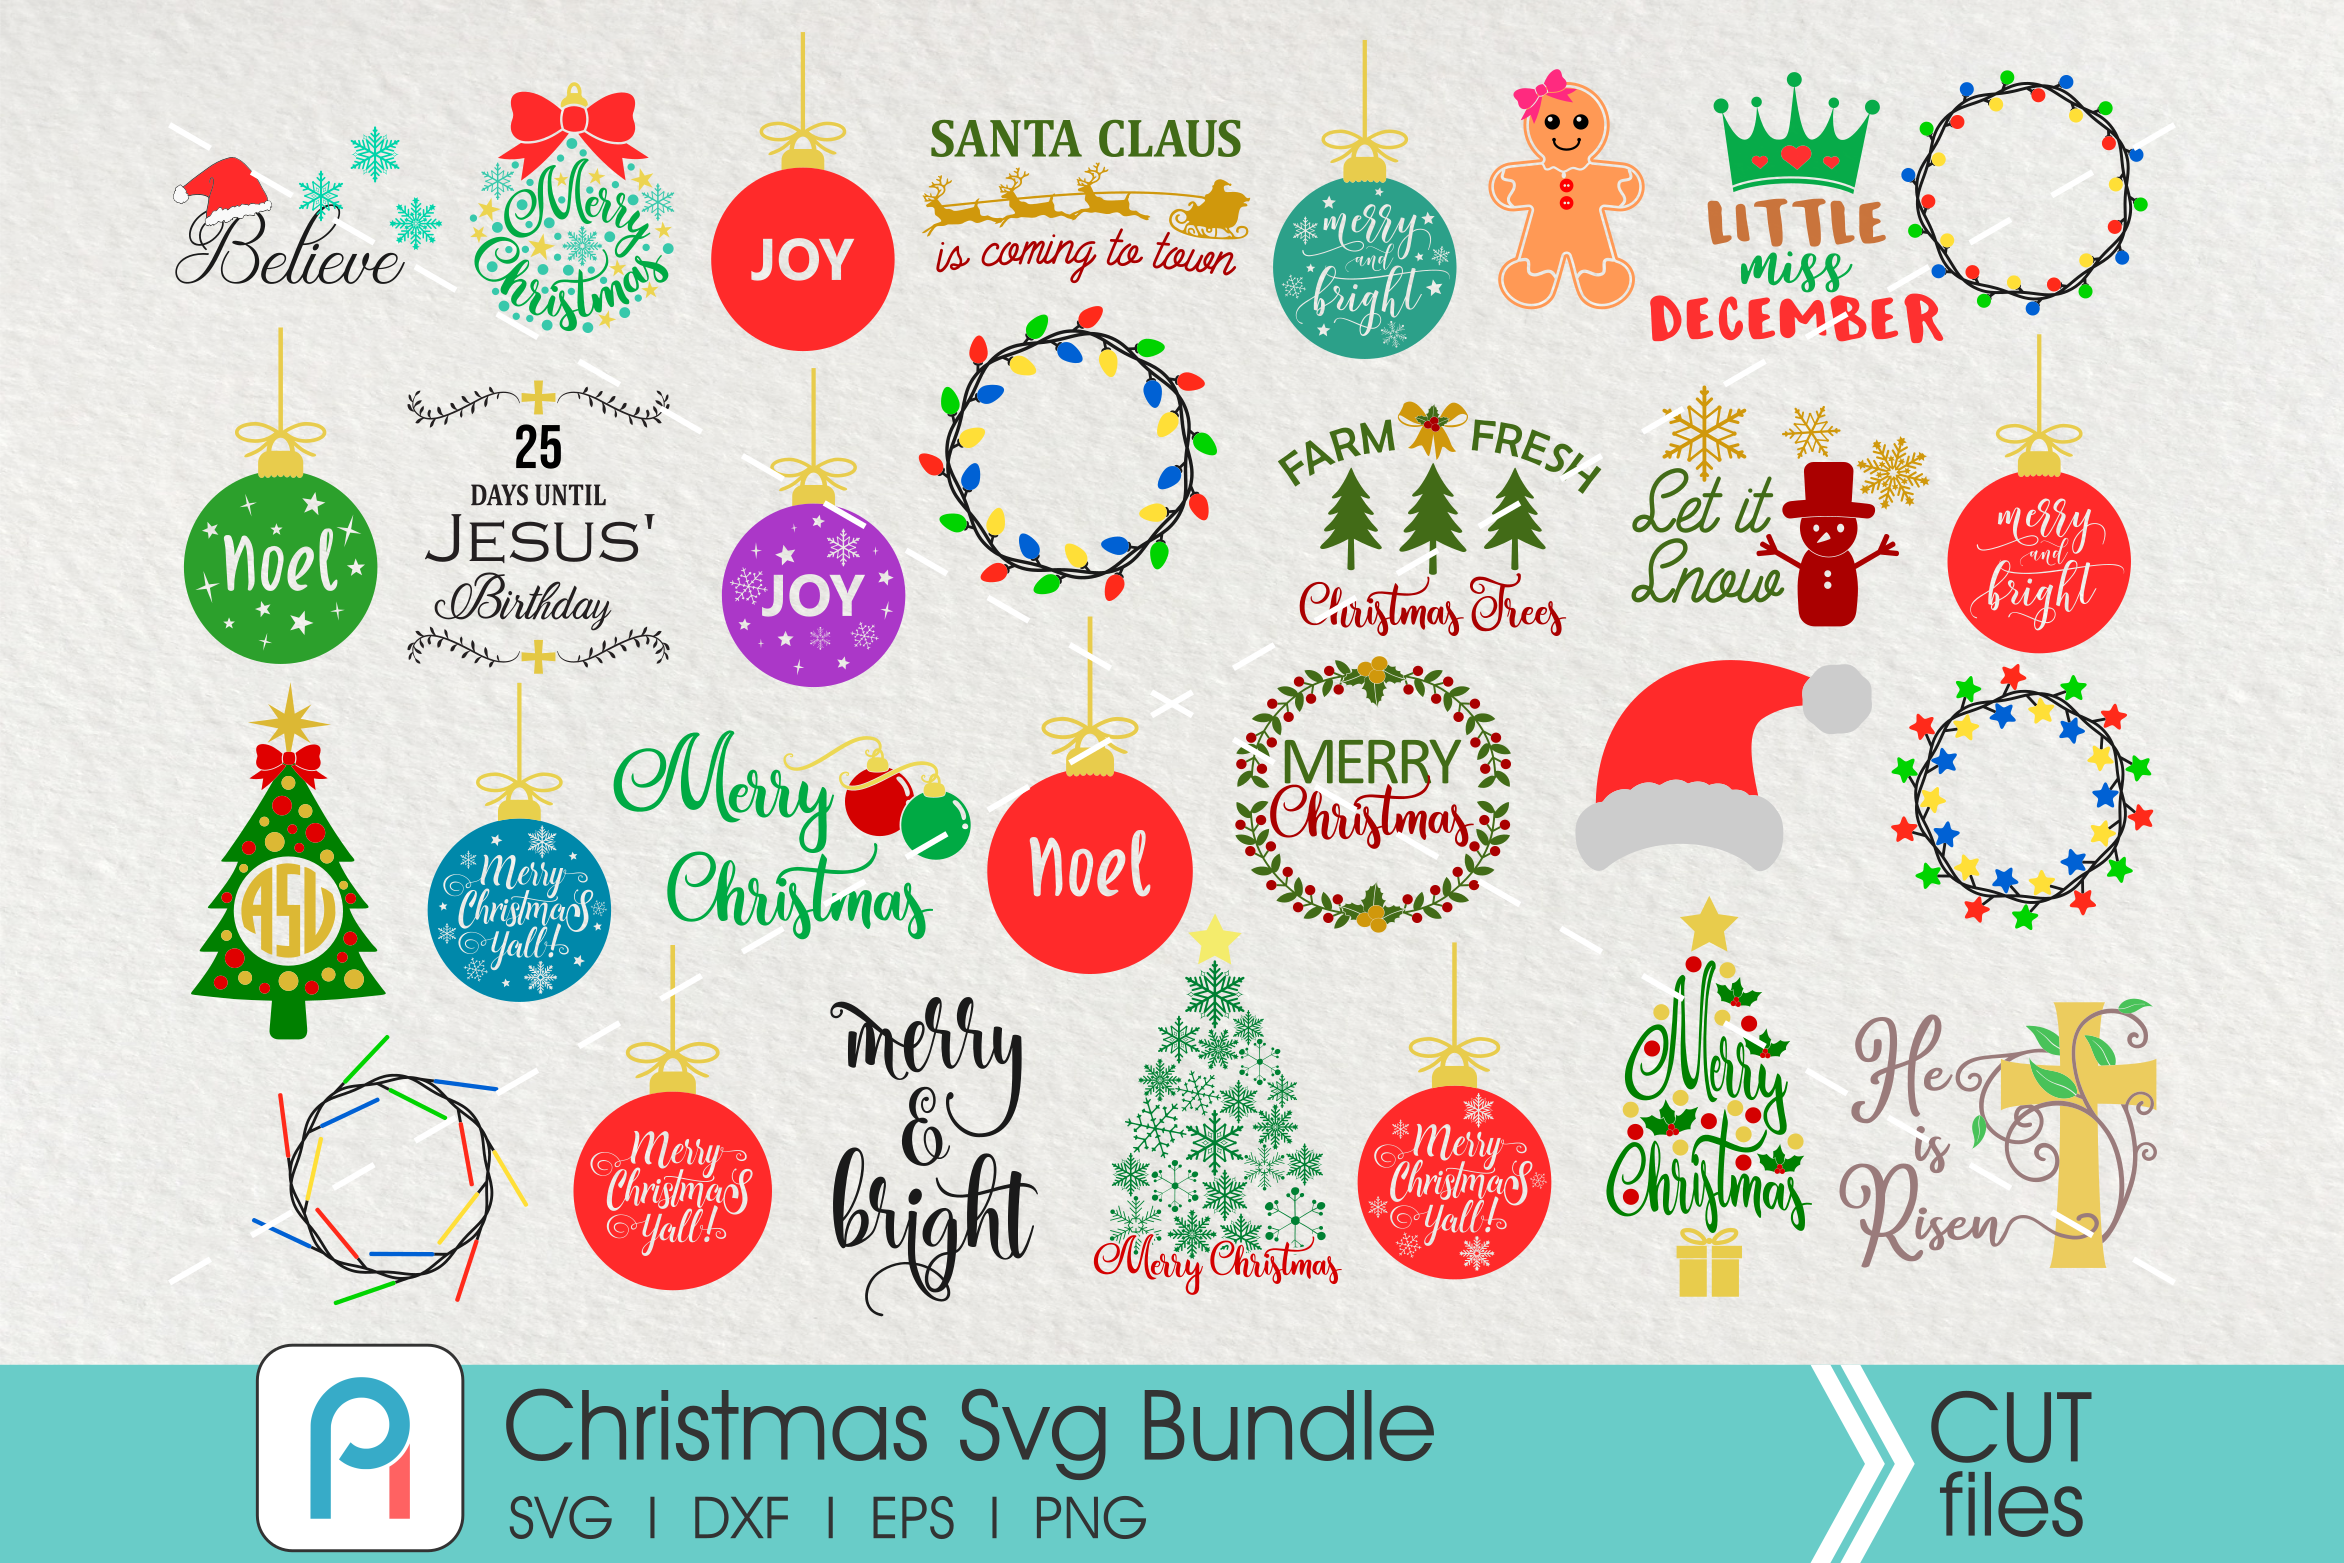 Download Christmas Egg Adopt Me for Cricut, Silhouette, Brother Scan N Cut Cutting Machines